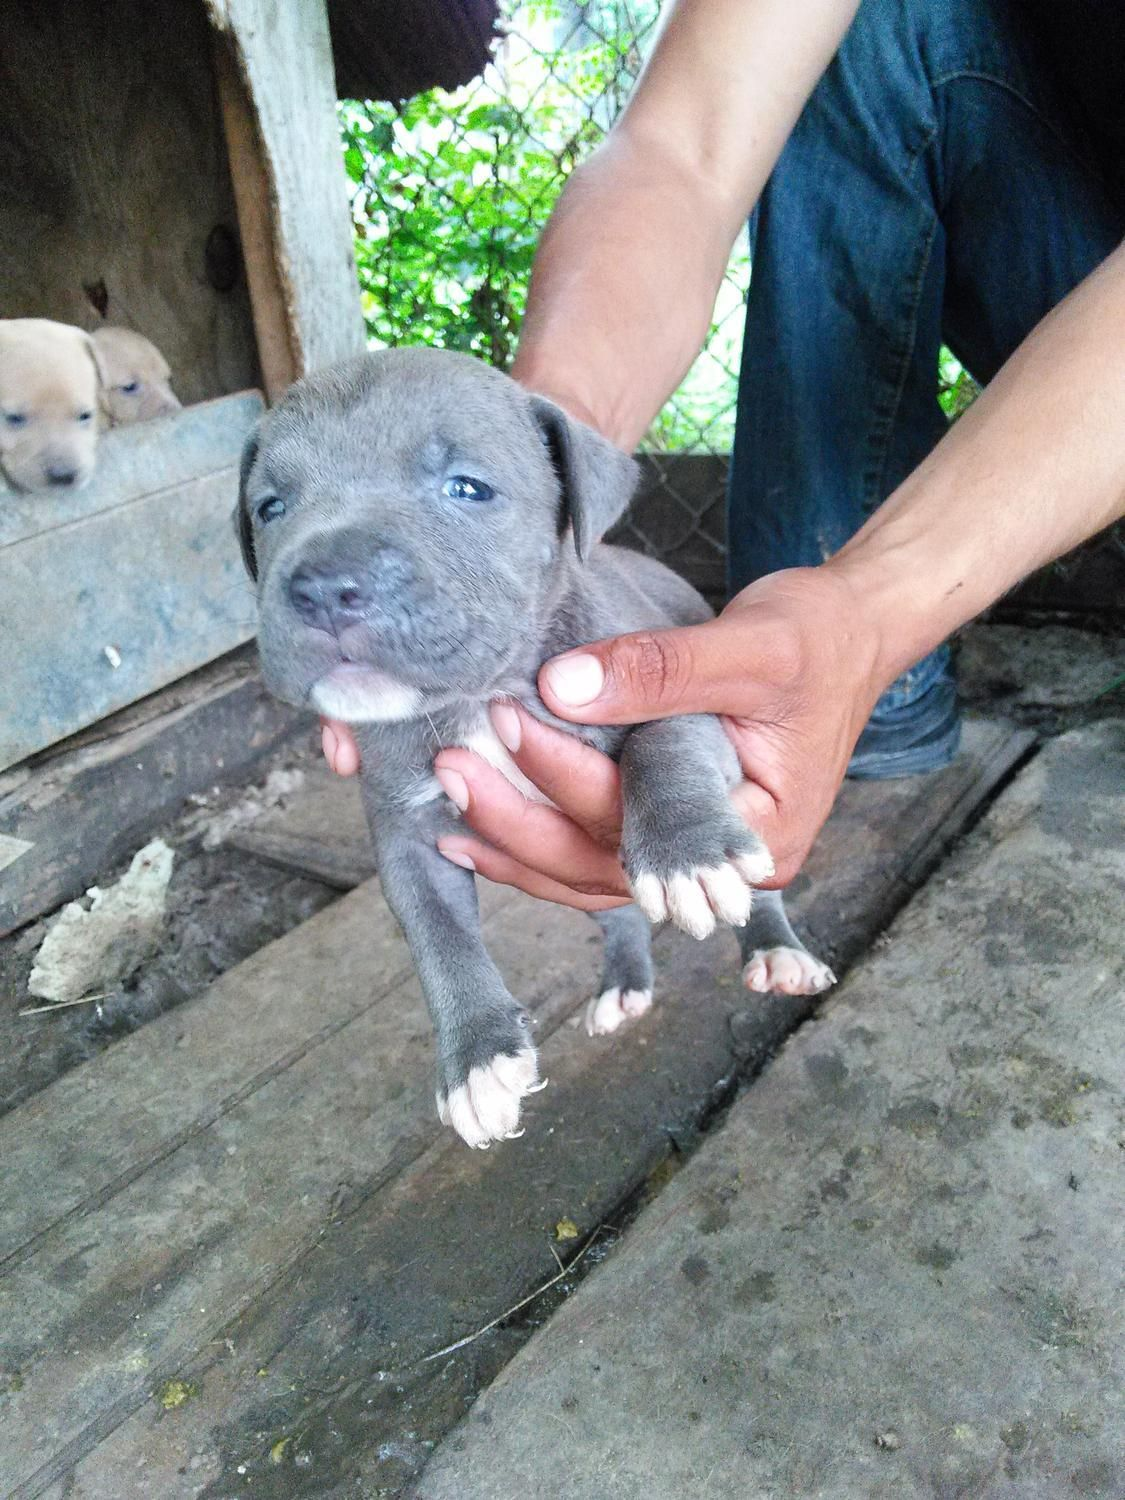 For Sale Blue Nose Pitbull Puppies Item Posted In The